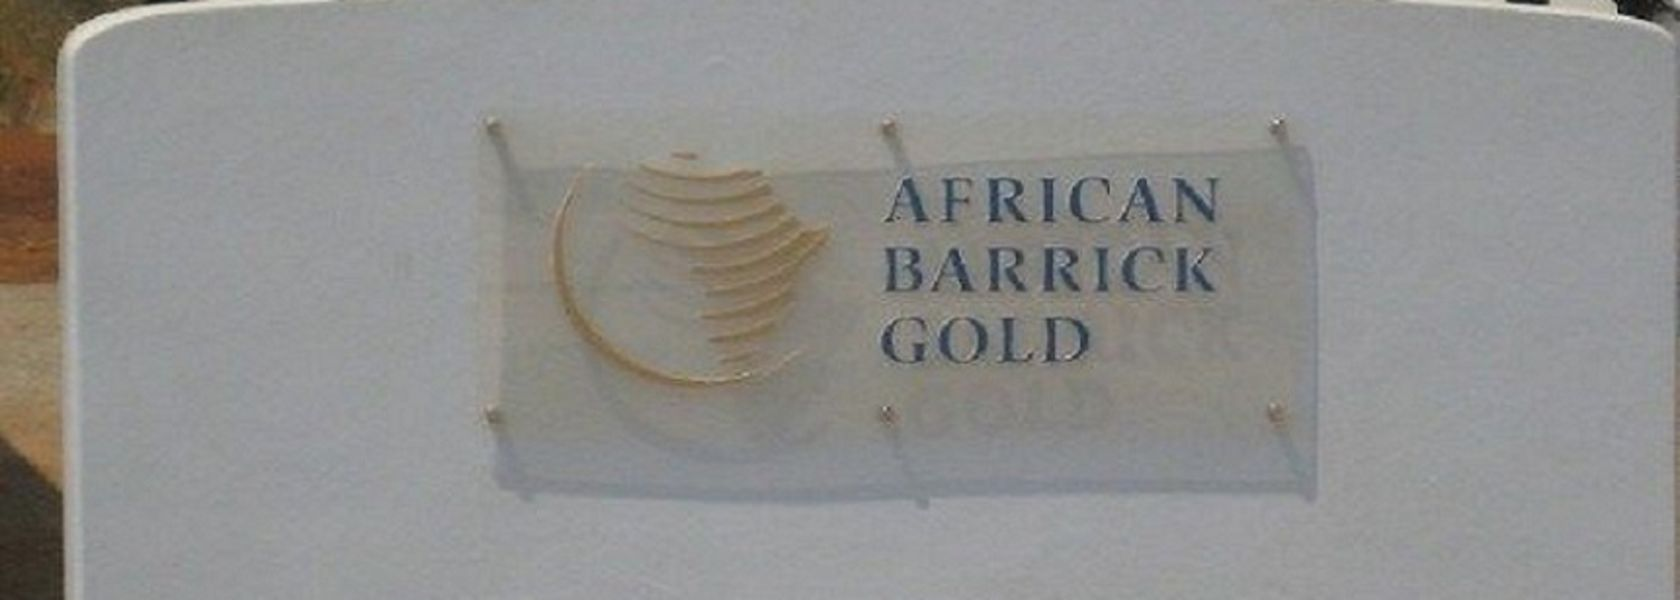 Barrick deals with Tanzania, but what about Acacia?